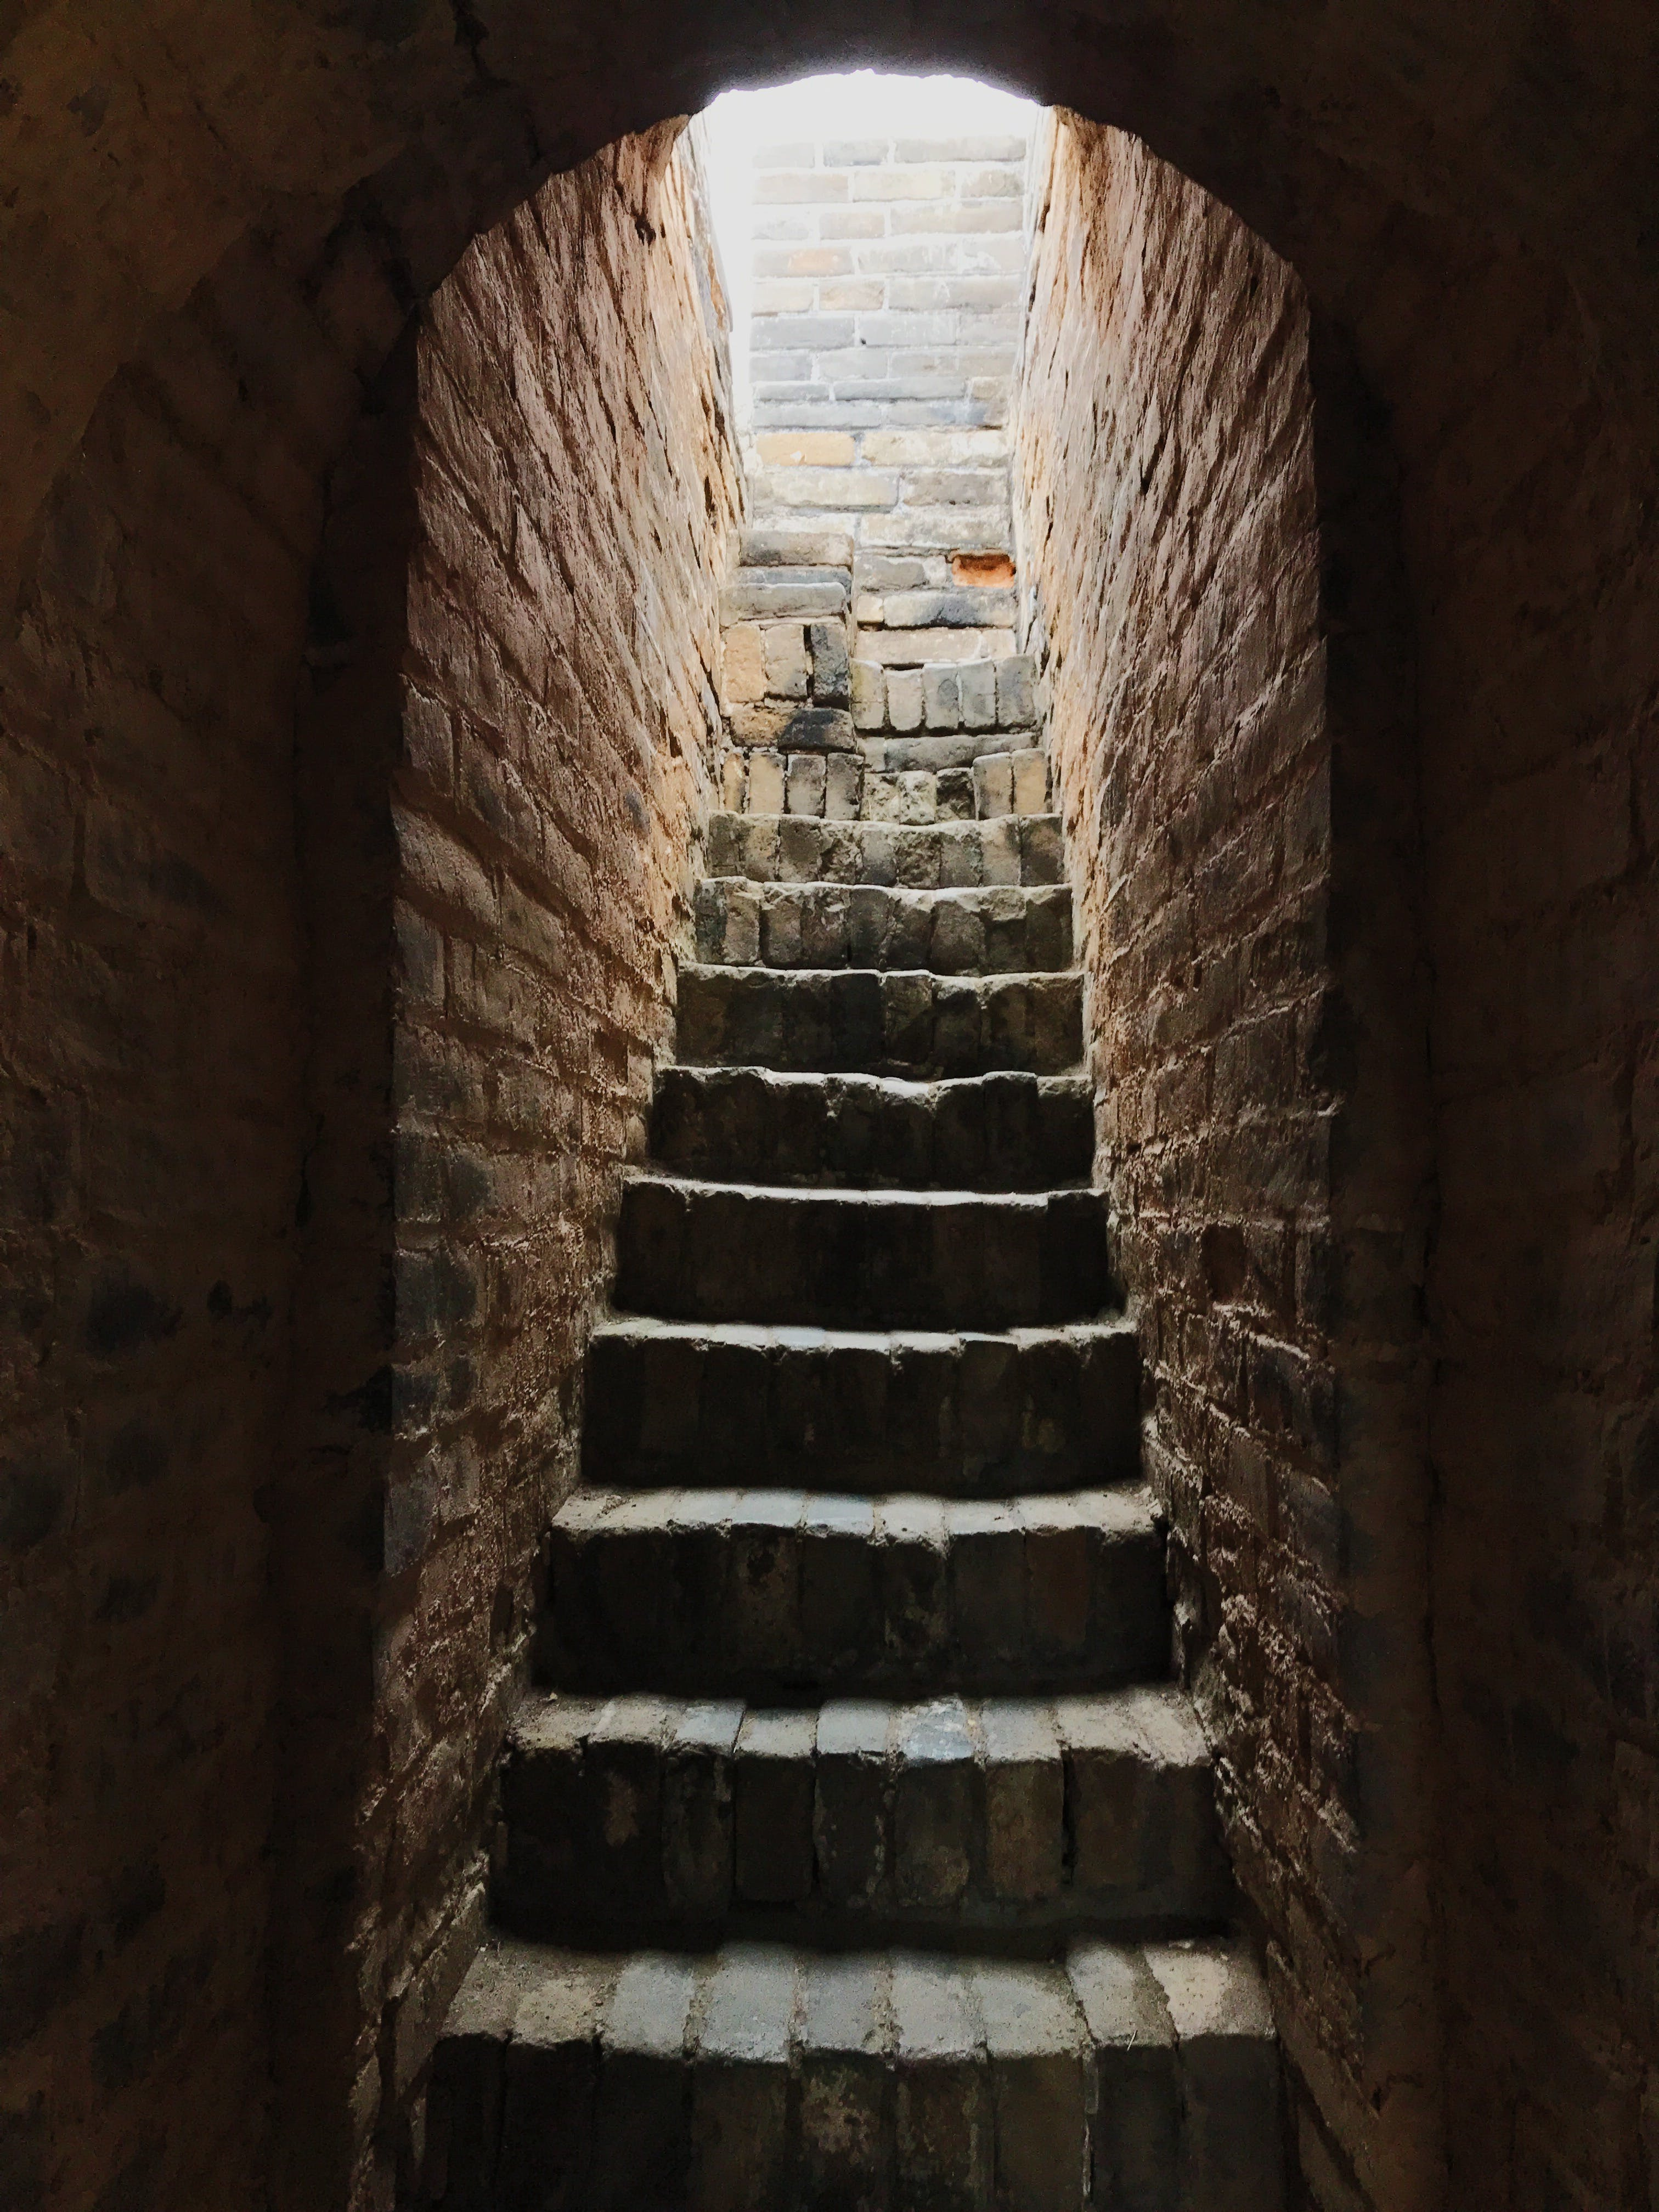 Free stock photo of brick, dark, Great Wall of China, light